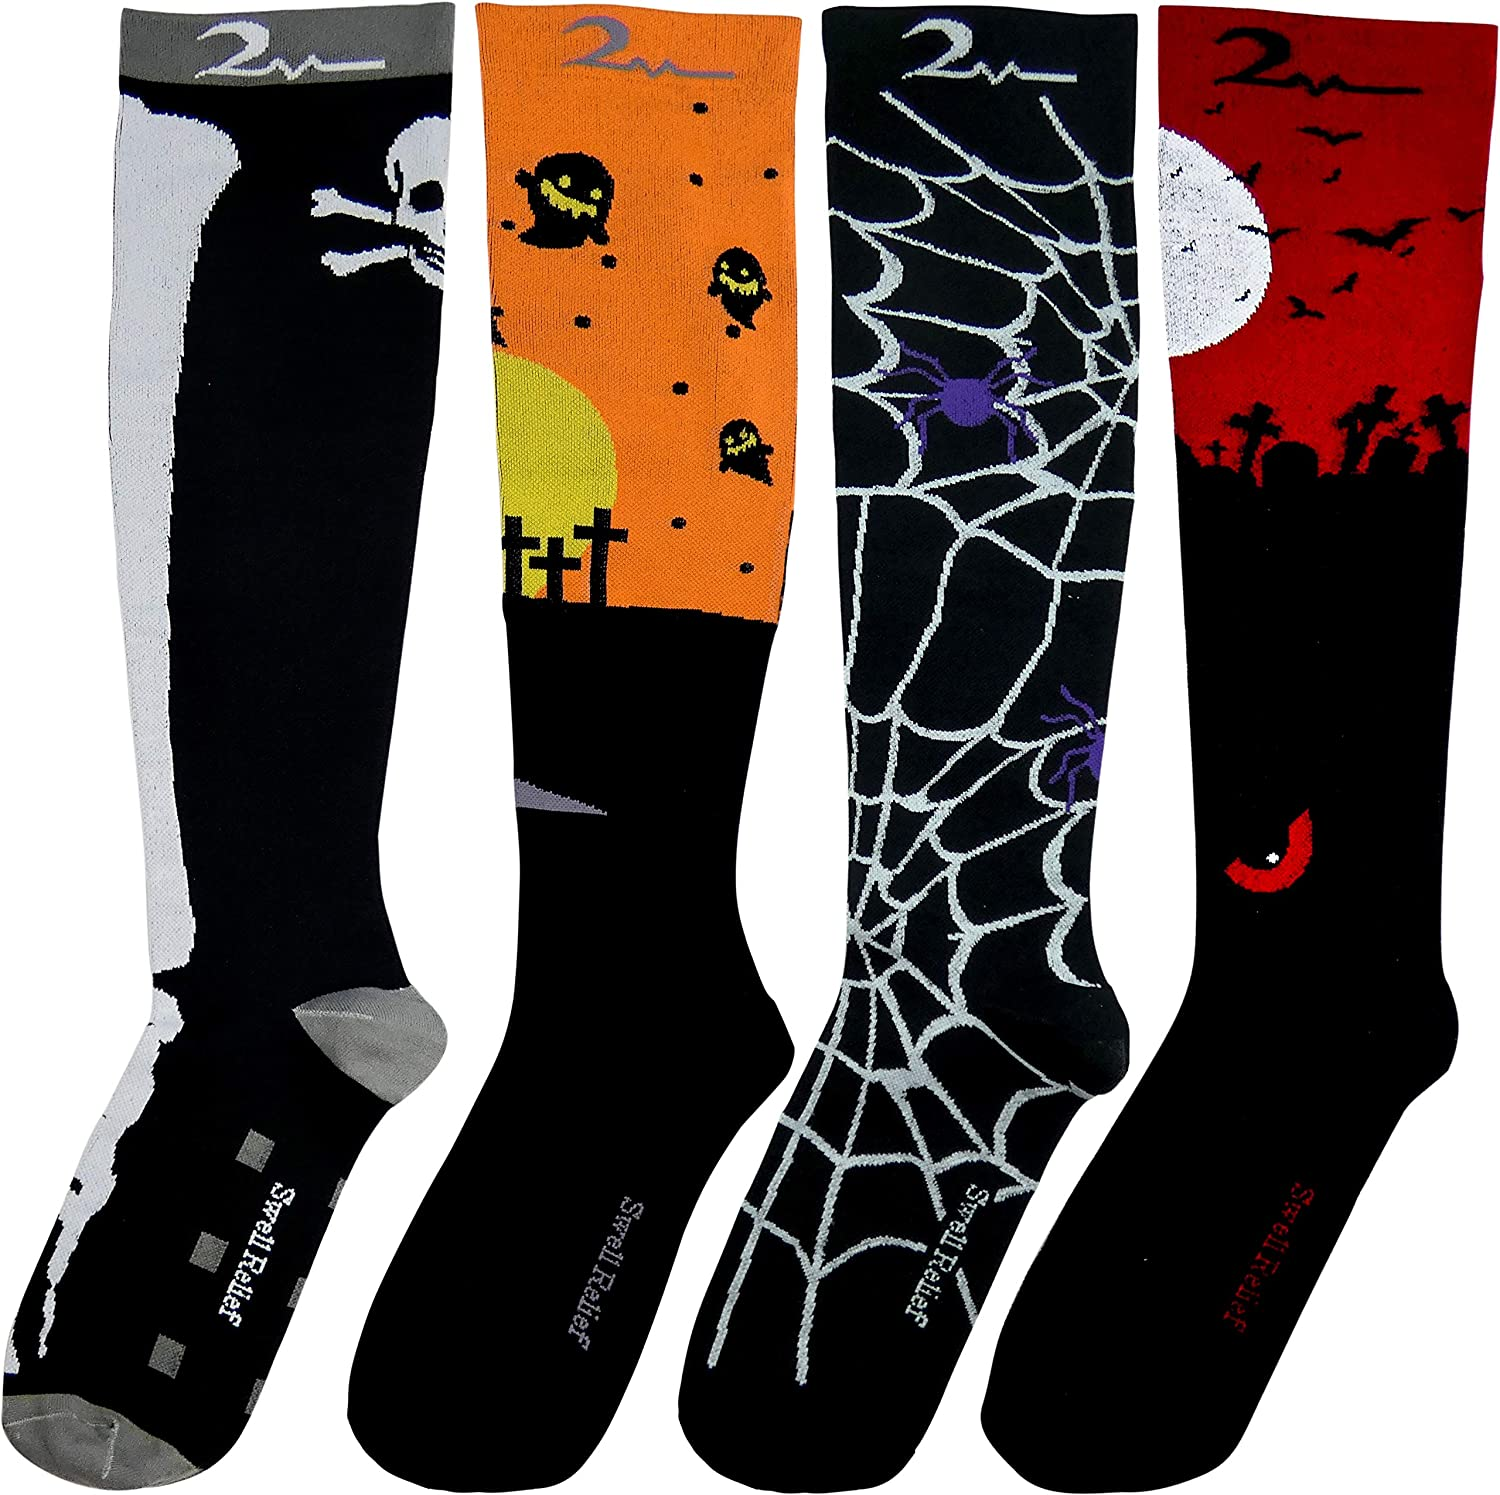 Romantic Heart Designs 4 Pair LargeX-Large Extra Soft Premium Quality Colorful Moderate Graduated Compression Socks 15-20 mmHg